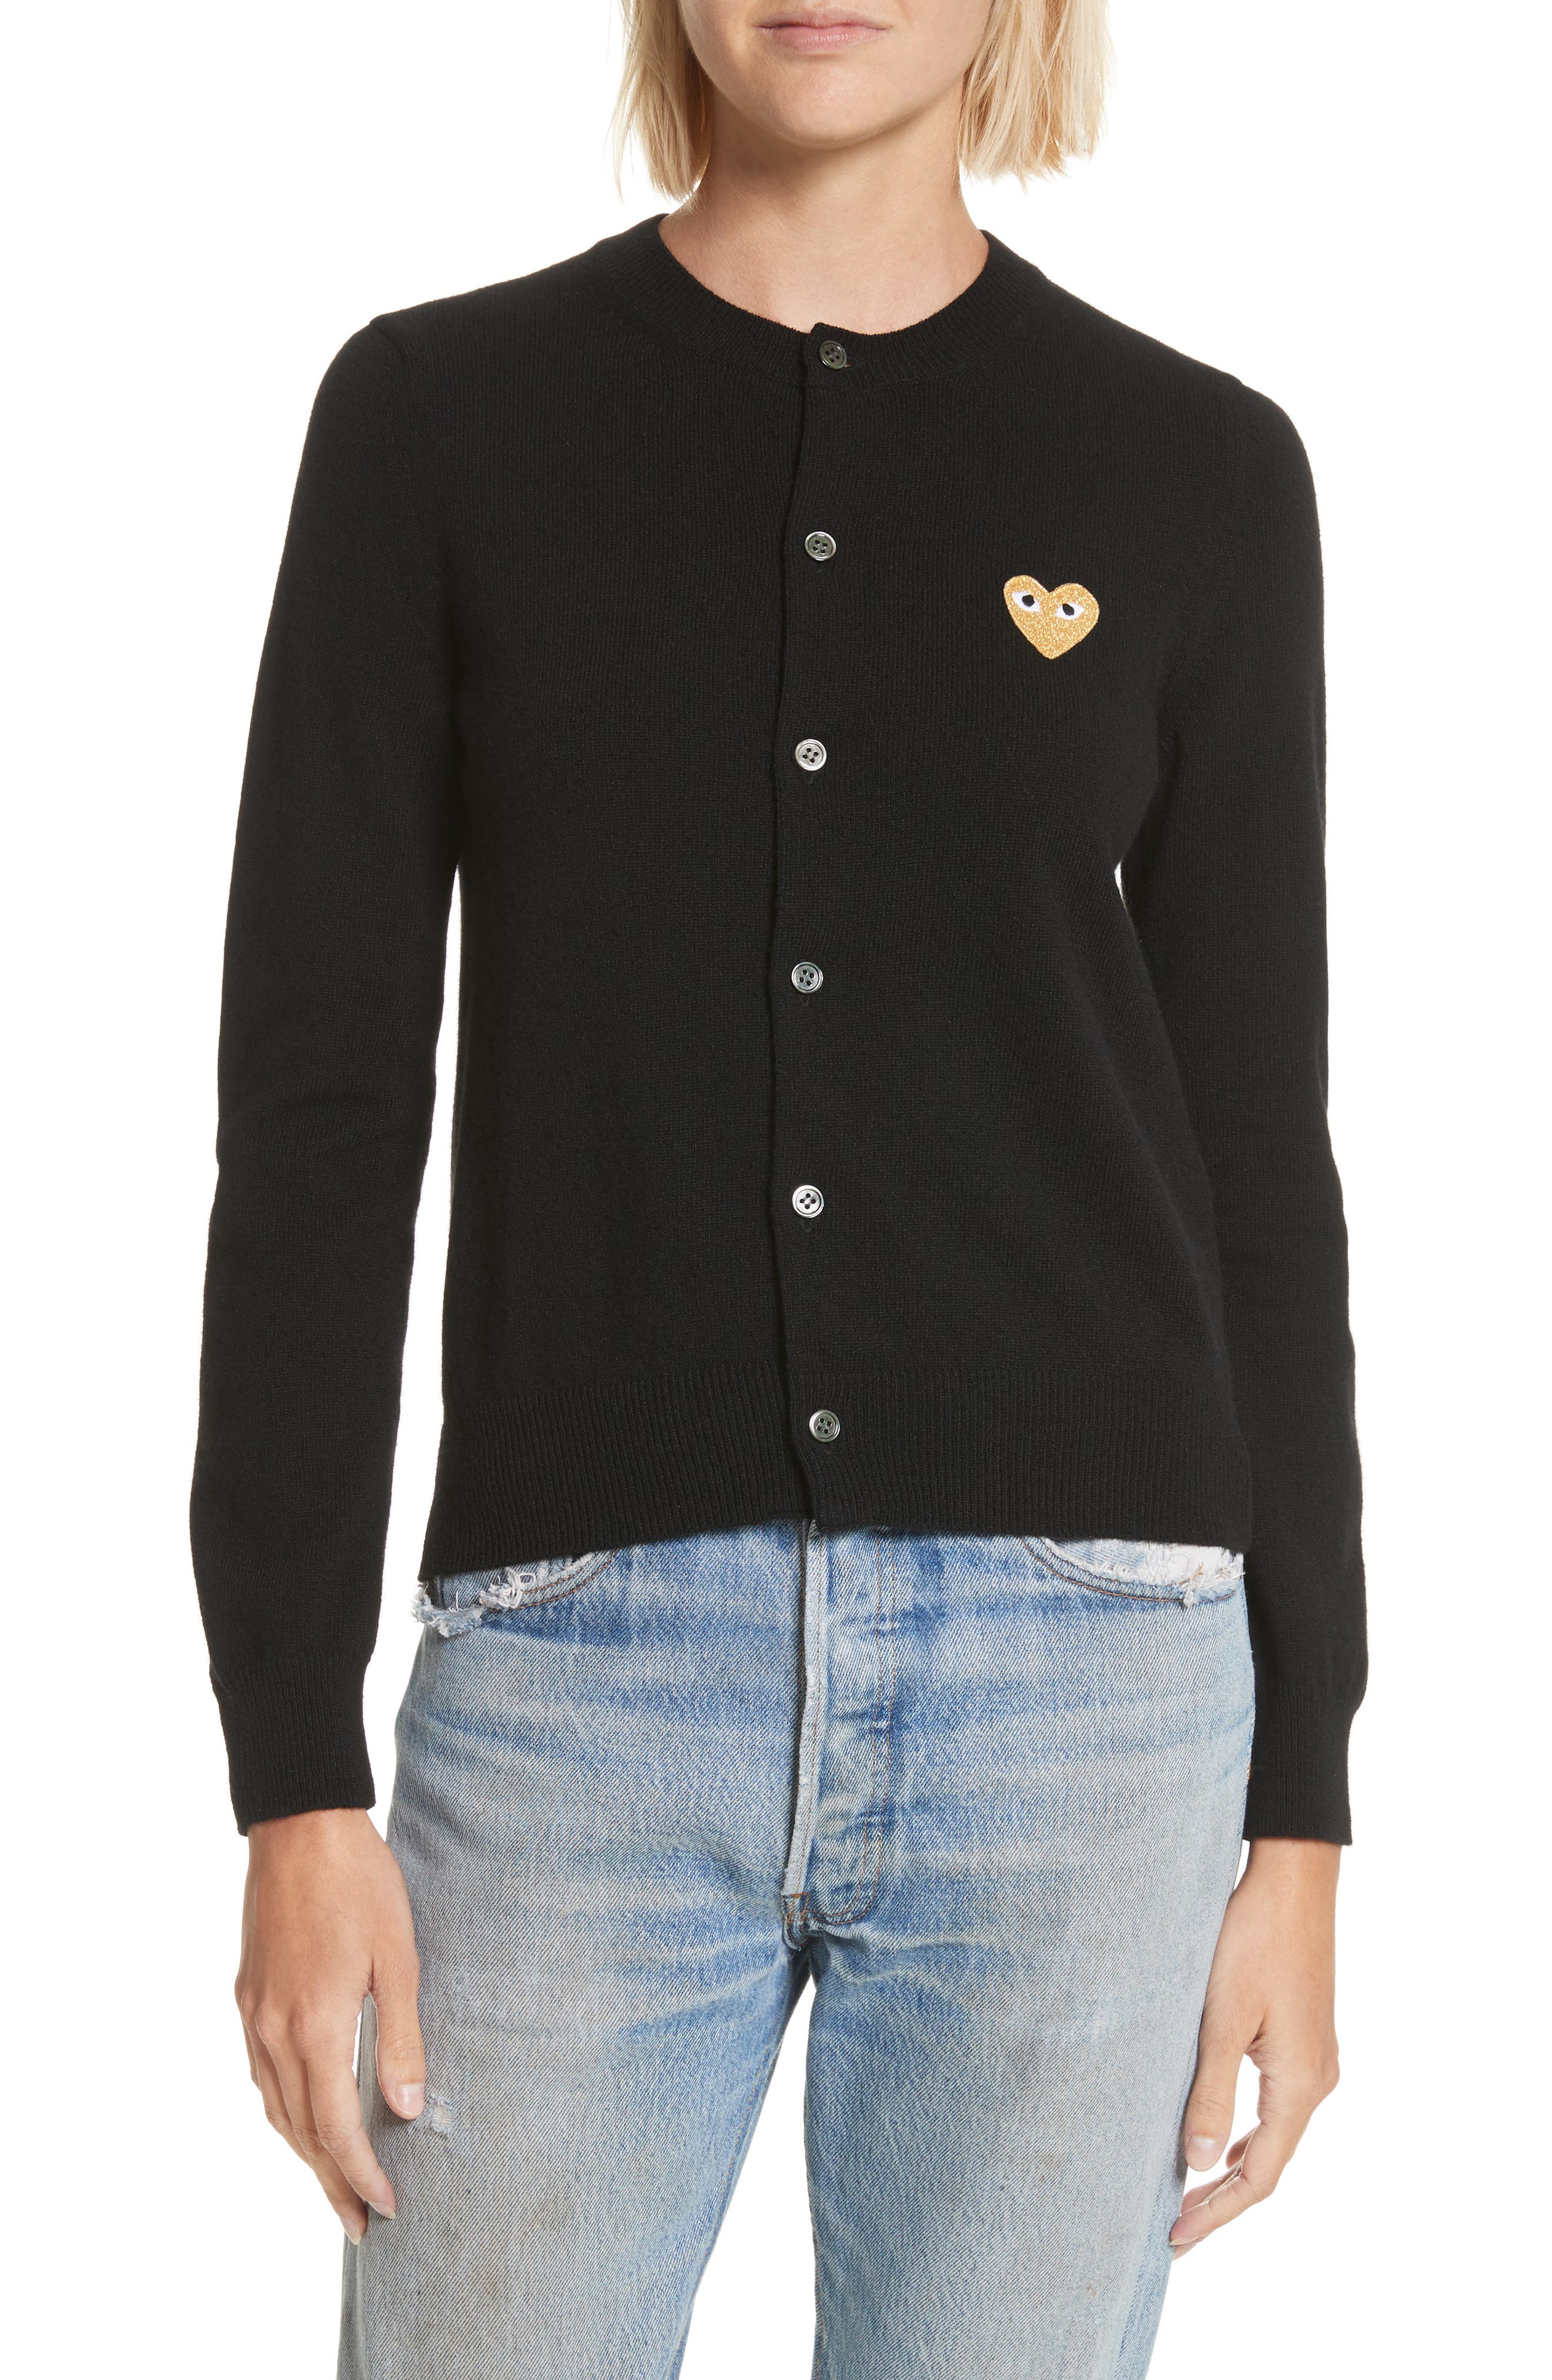 PLAY Gold Heart Patch Wool Cardigan,                         Main,                         color,